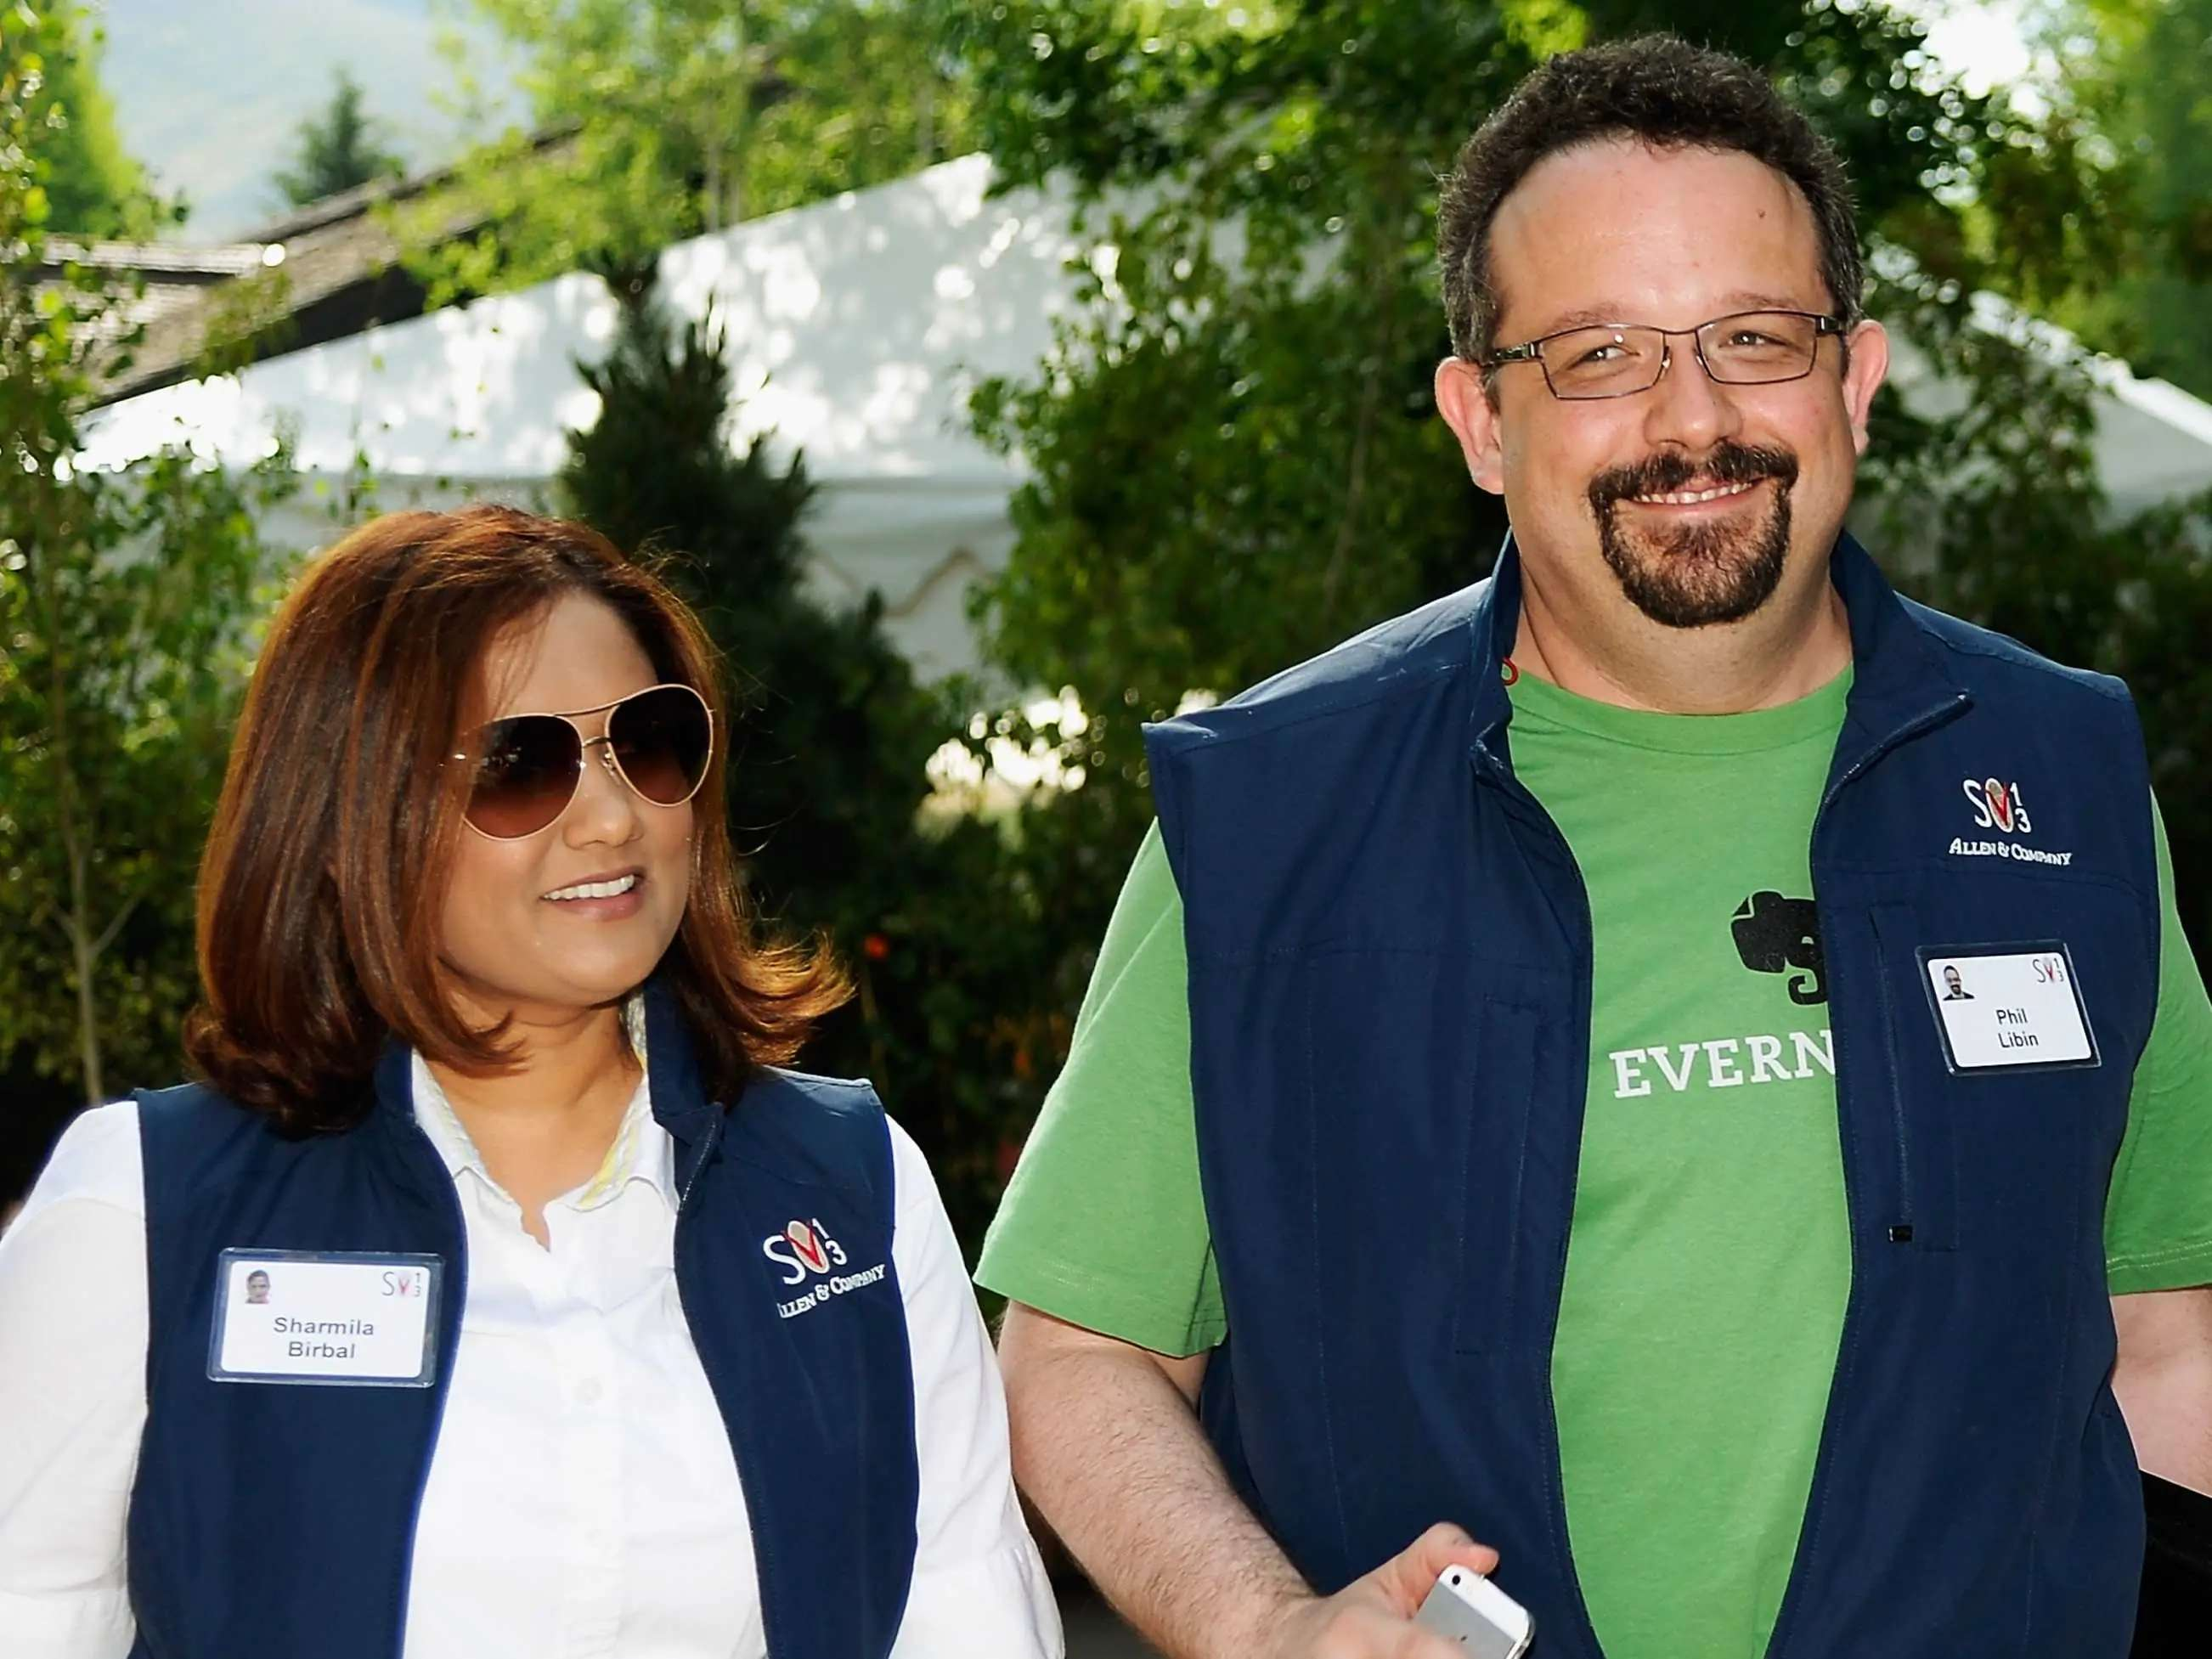 Evernote CEO Phil Libin and his wife Sharmila Birbal work together.